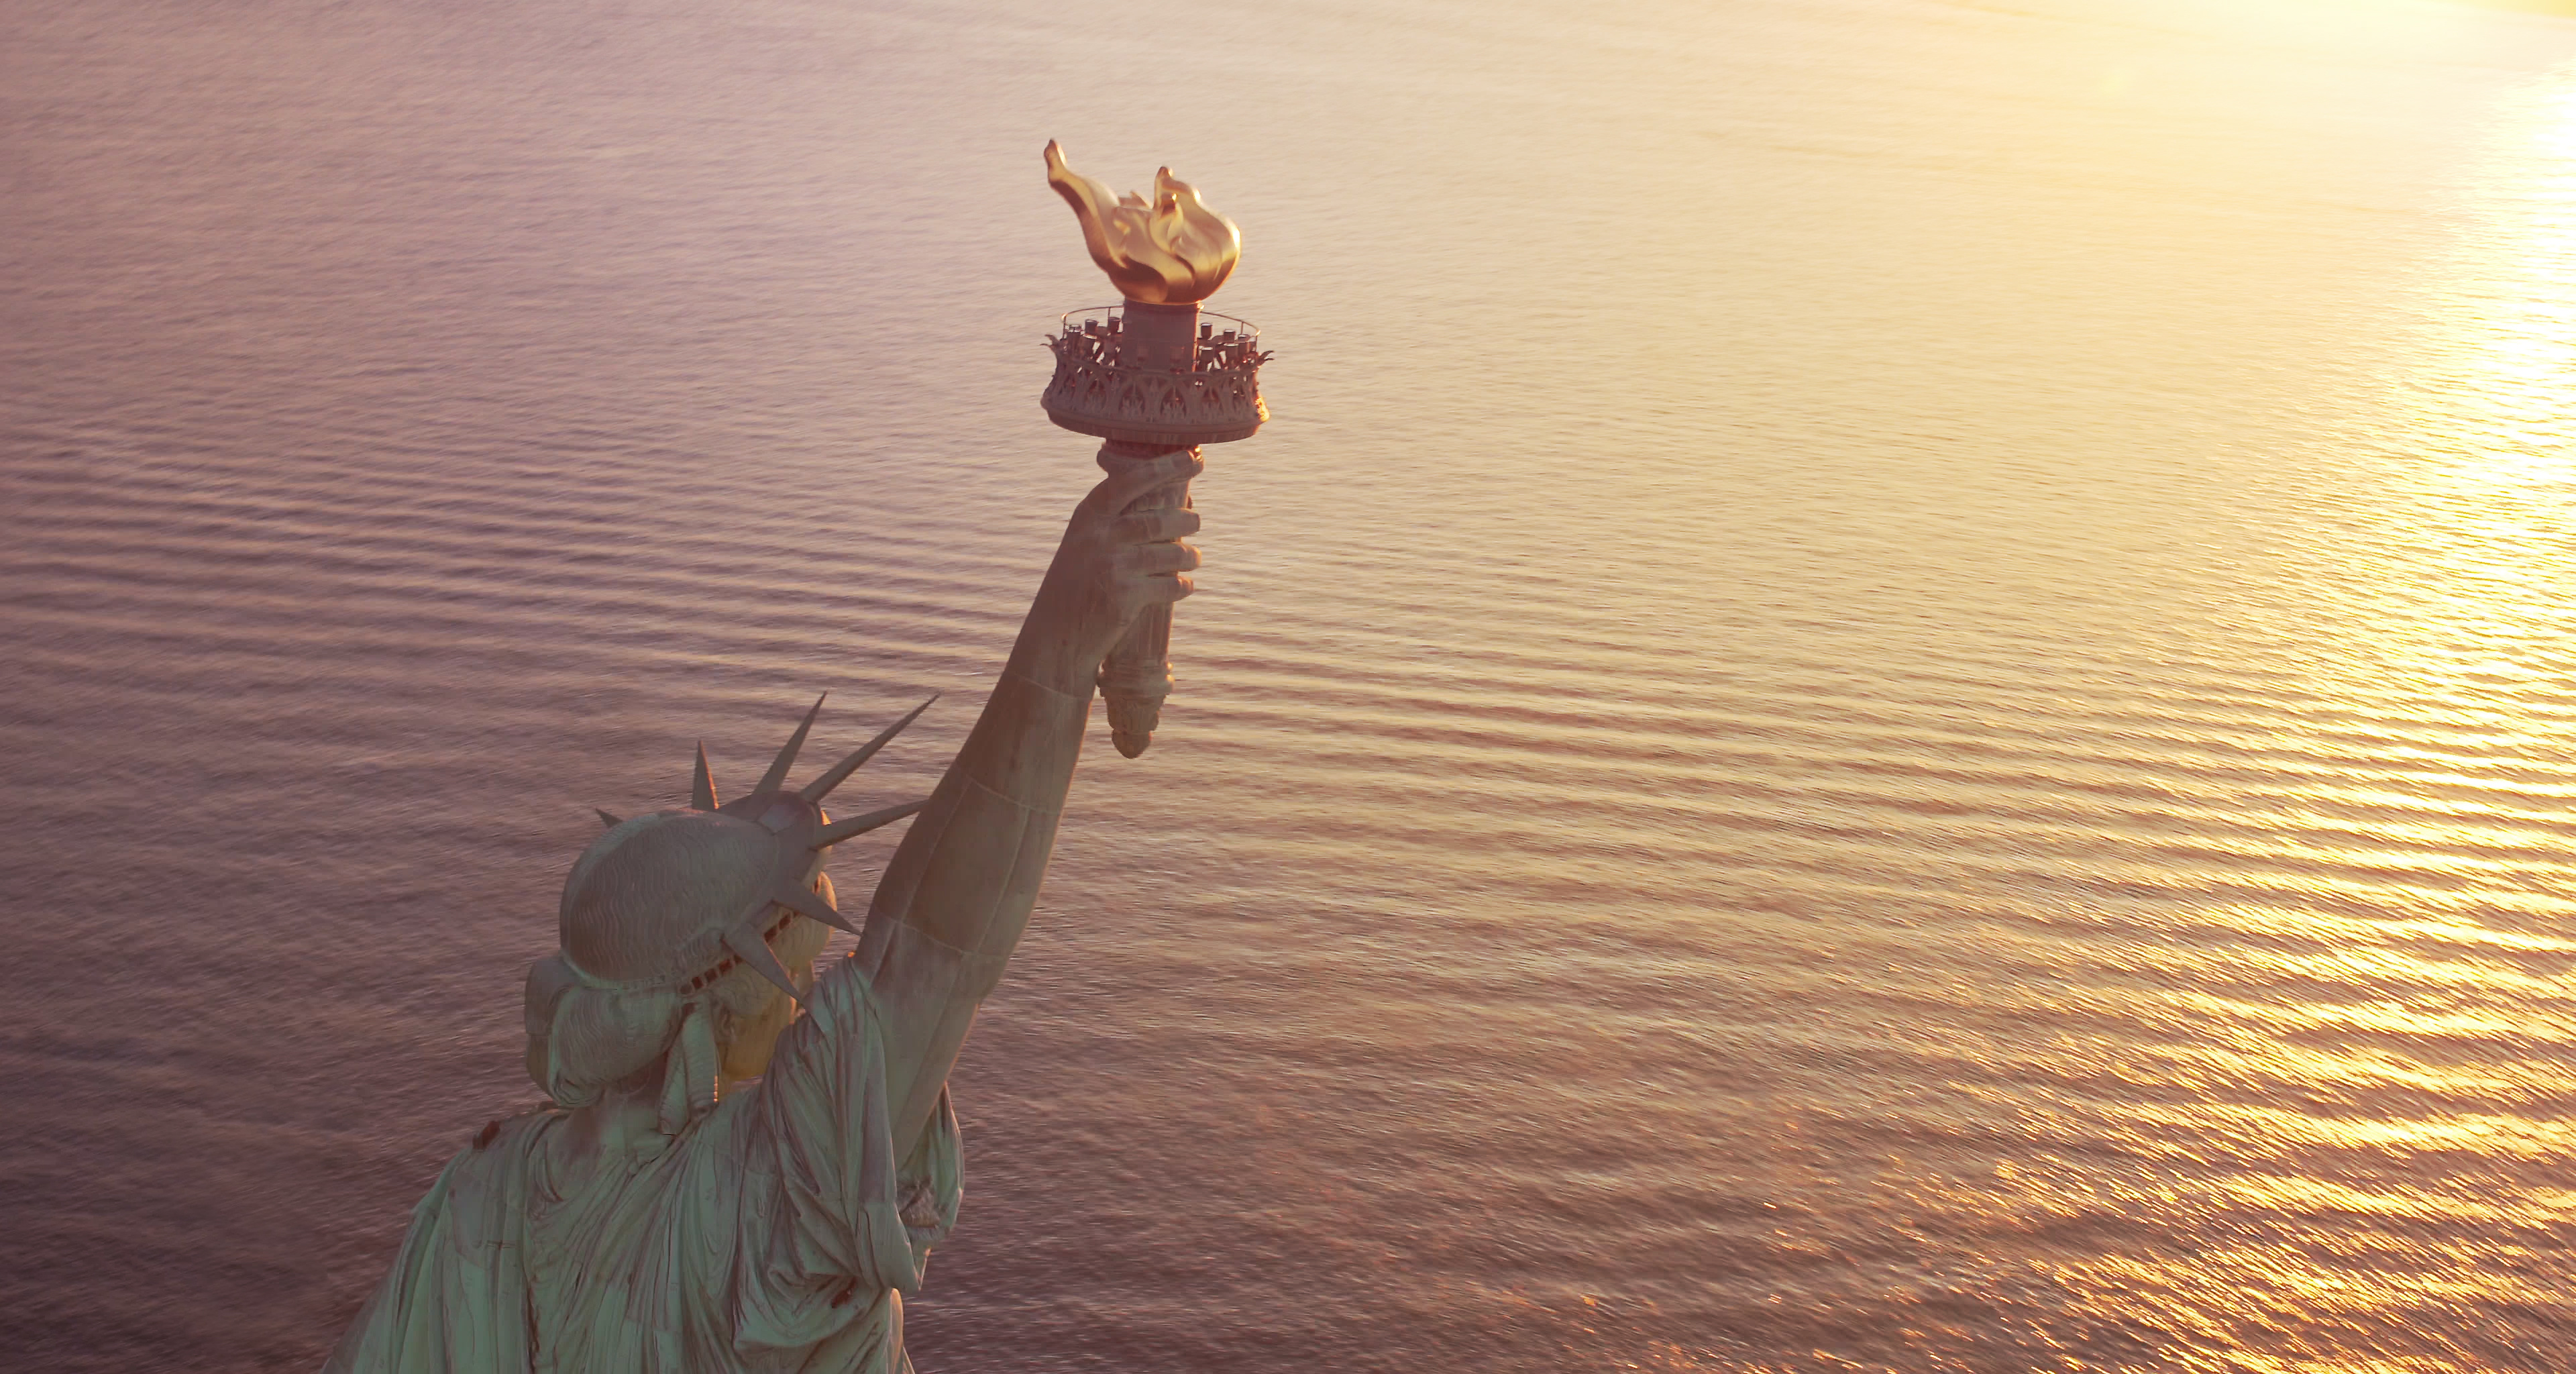 Statue of Liberty at sunrise with copy space